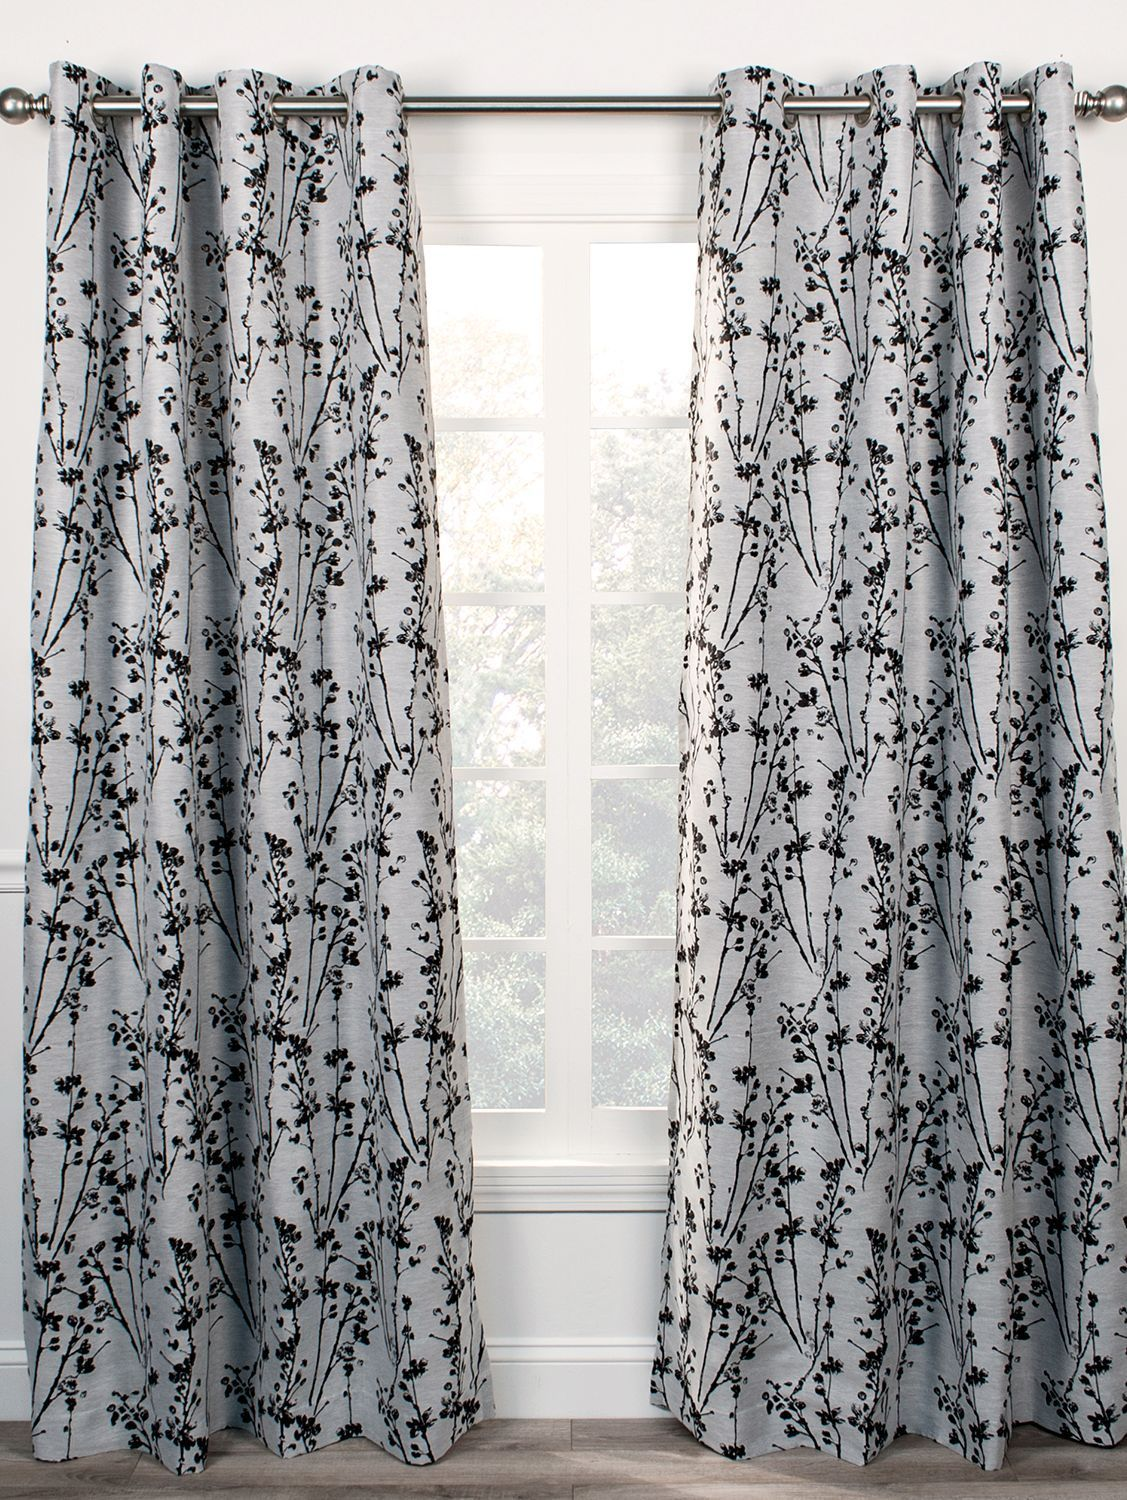 Kitchen Curtains Kohls Pull Out Wire Baskets Cupboards Cheap Creative Grey Tie Backs Fabric No Sew Farmhouse Blue Dropclothcurtains